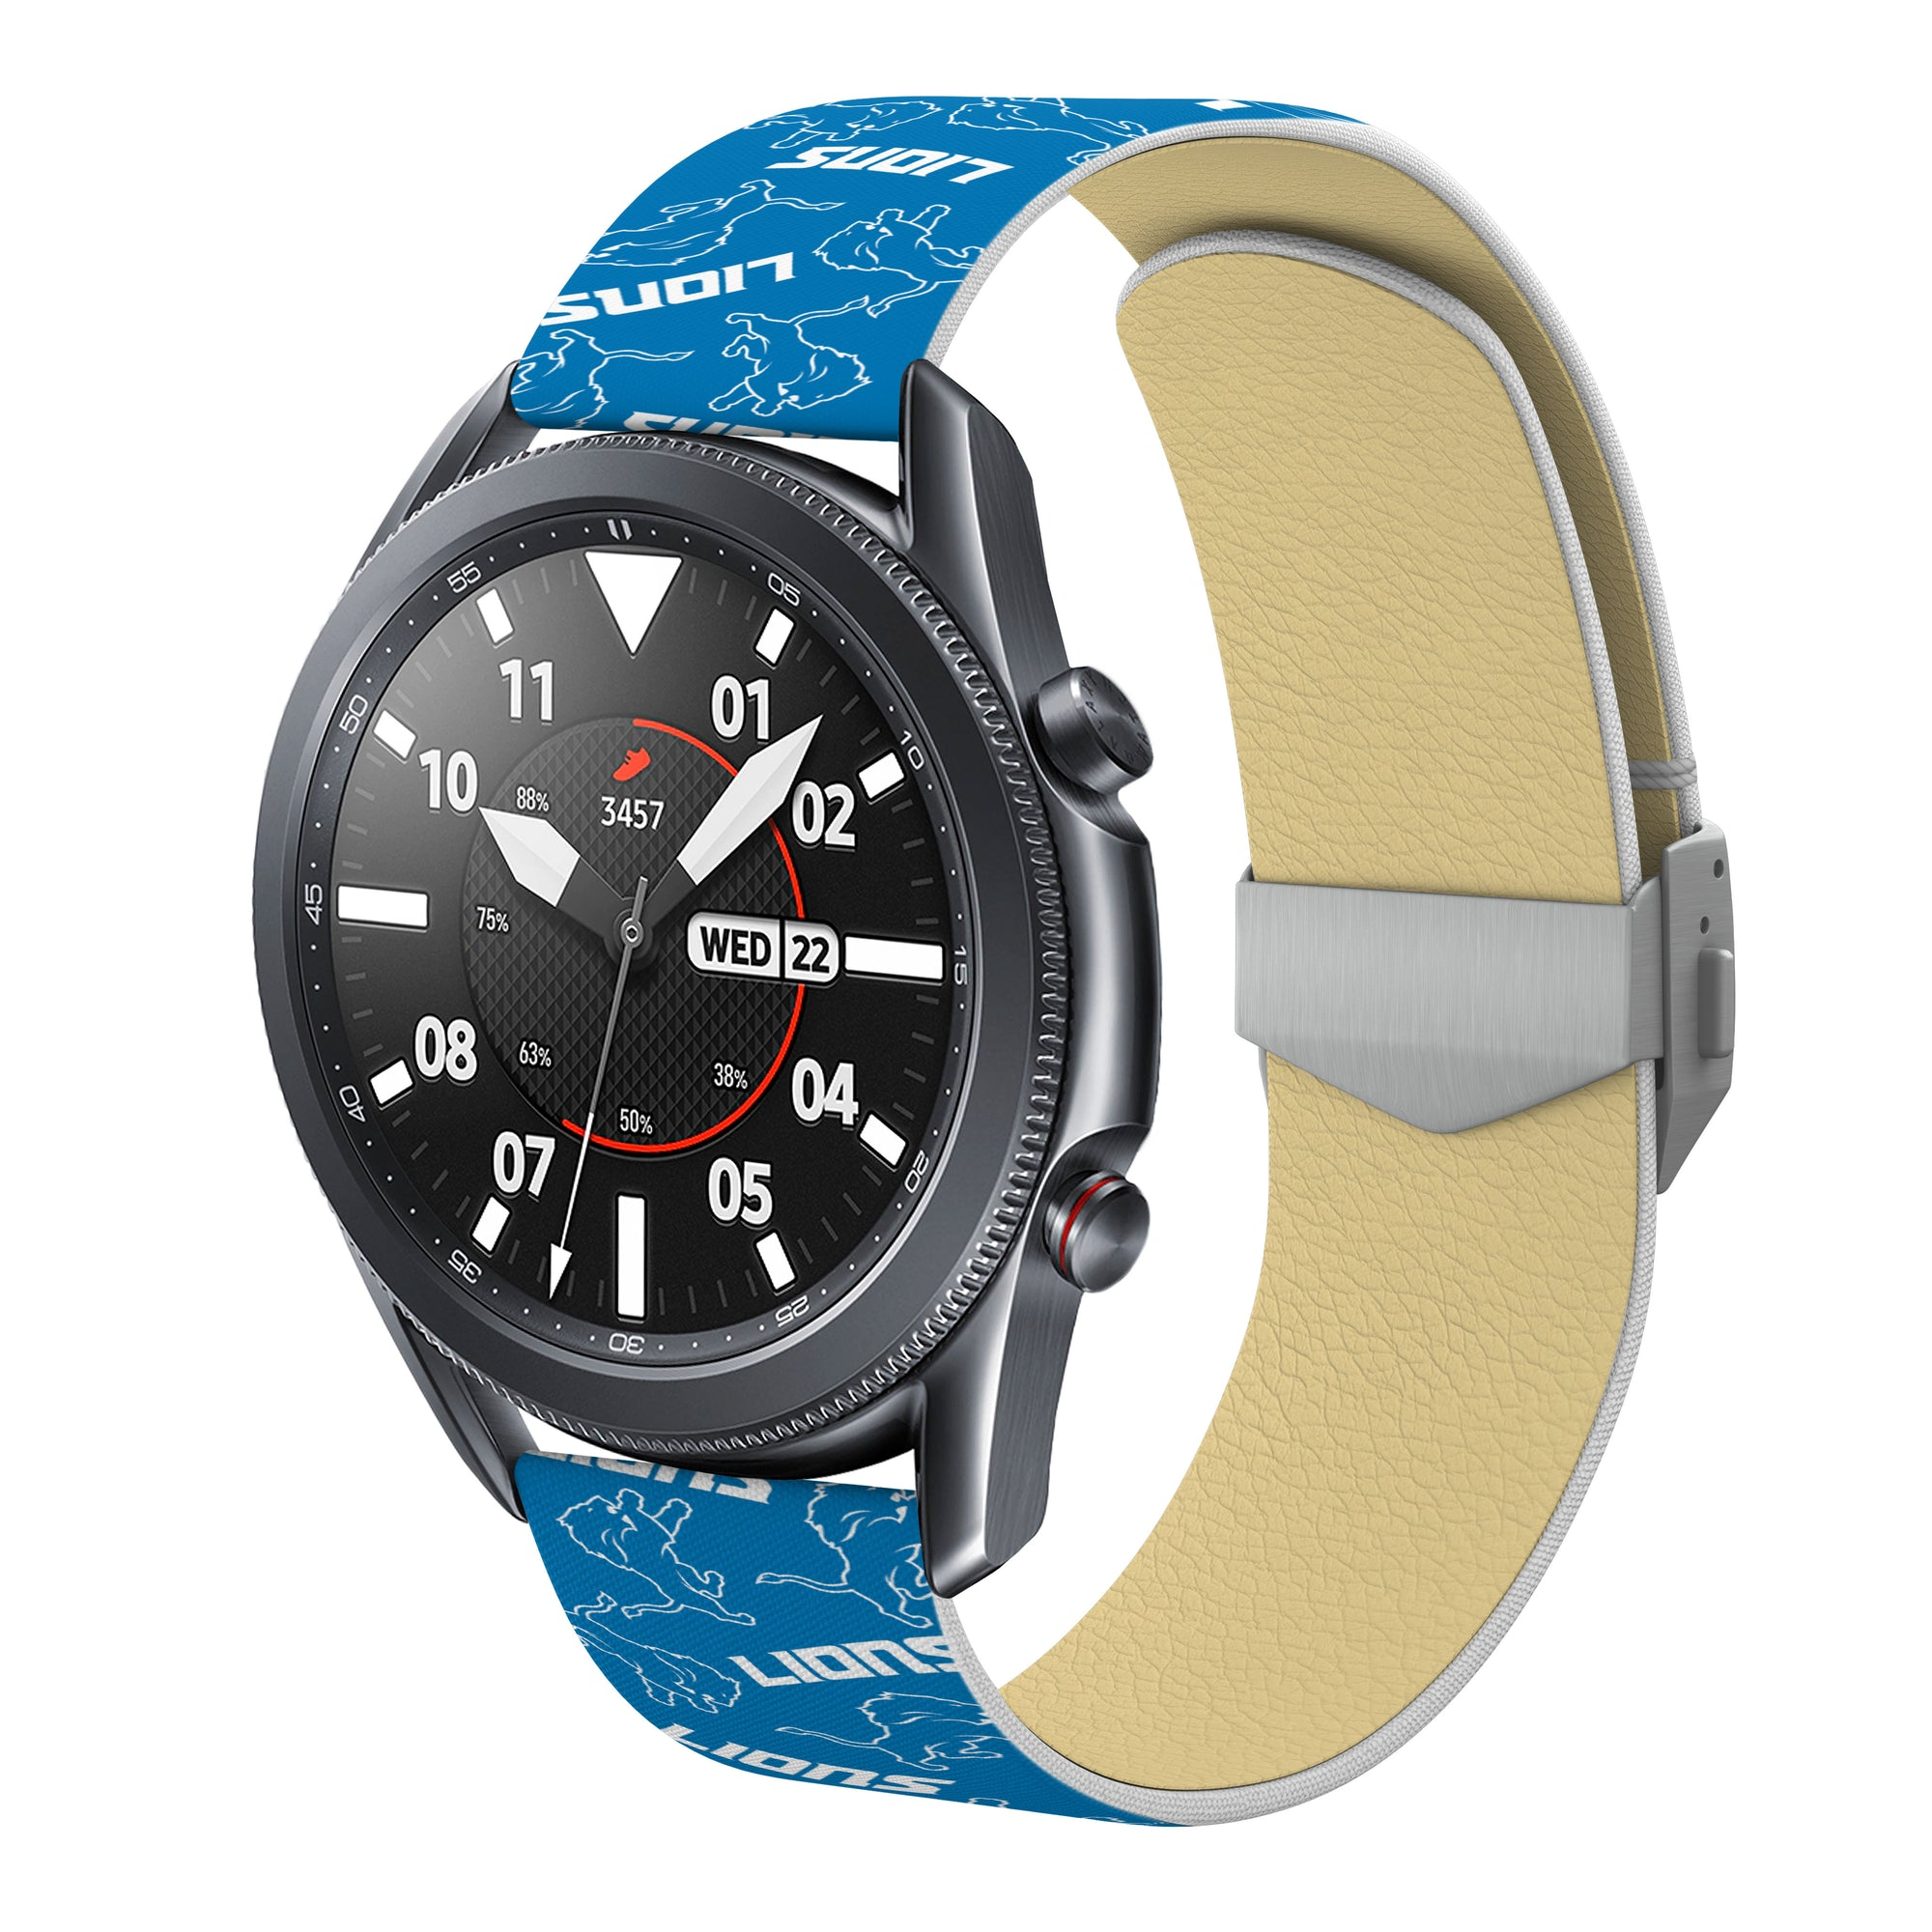 Detroit Lions Debossed Silicone Watchbands